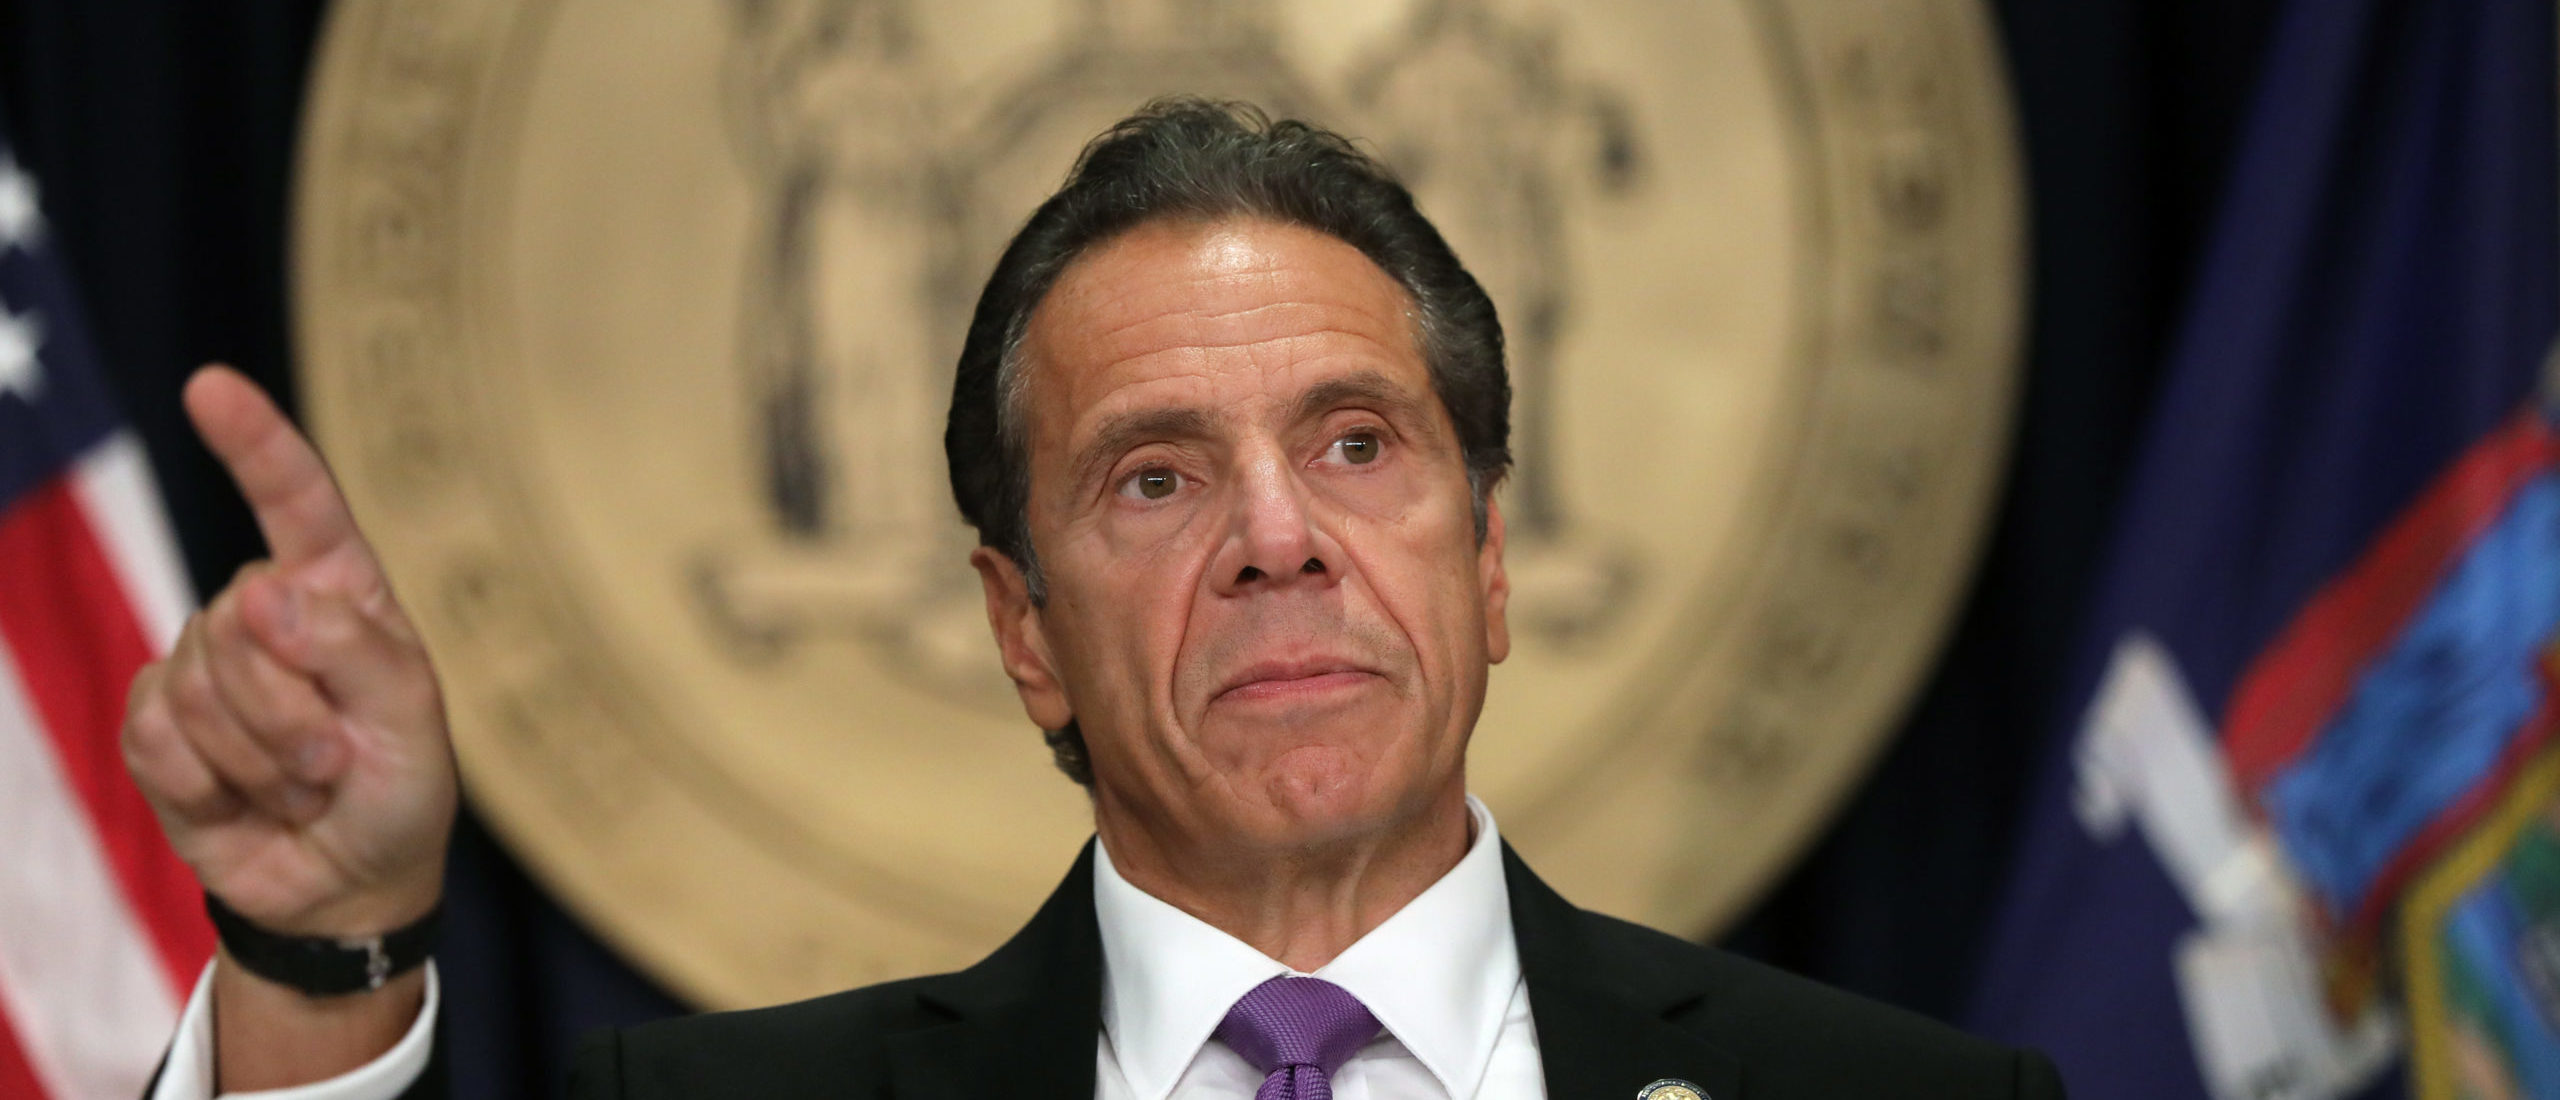 New York state Gov. Andrew Cuomo speaks at a news conference on September 08, 2020 in New York City. Cuomo, though easing restrictions on casinos and malls throughout the state, has declined to do so for indoor dining in restaurants in New York City despite pressure from business owners, citing struggles by the city to enforce the state's previous orders. (Photo by Spencer Platt/Getty Images)